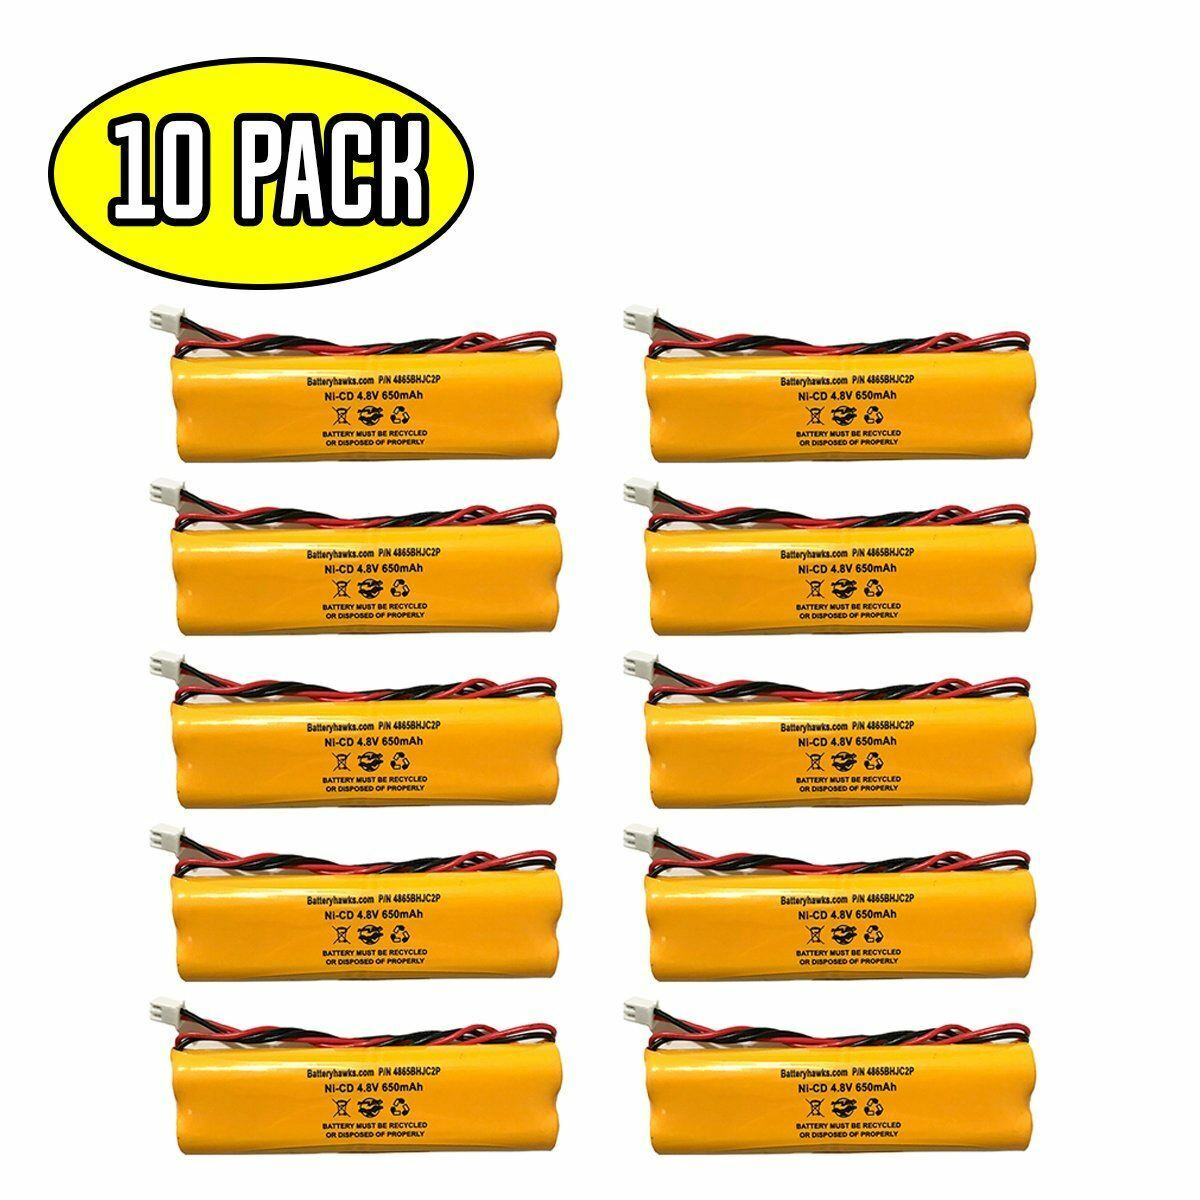 (10 pack) 4.8v 650mAh Ni-CD Battery Pack Replacement for Emergency / Exit Light